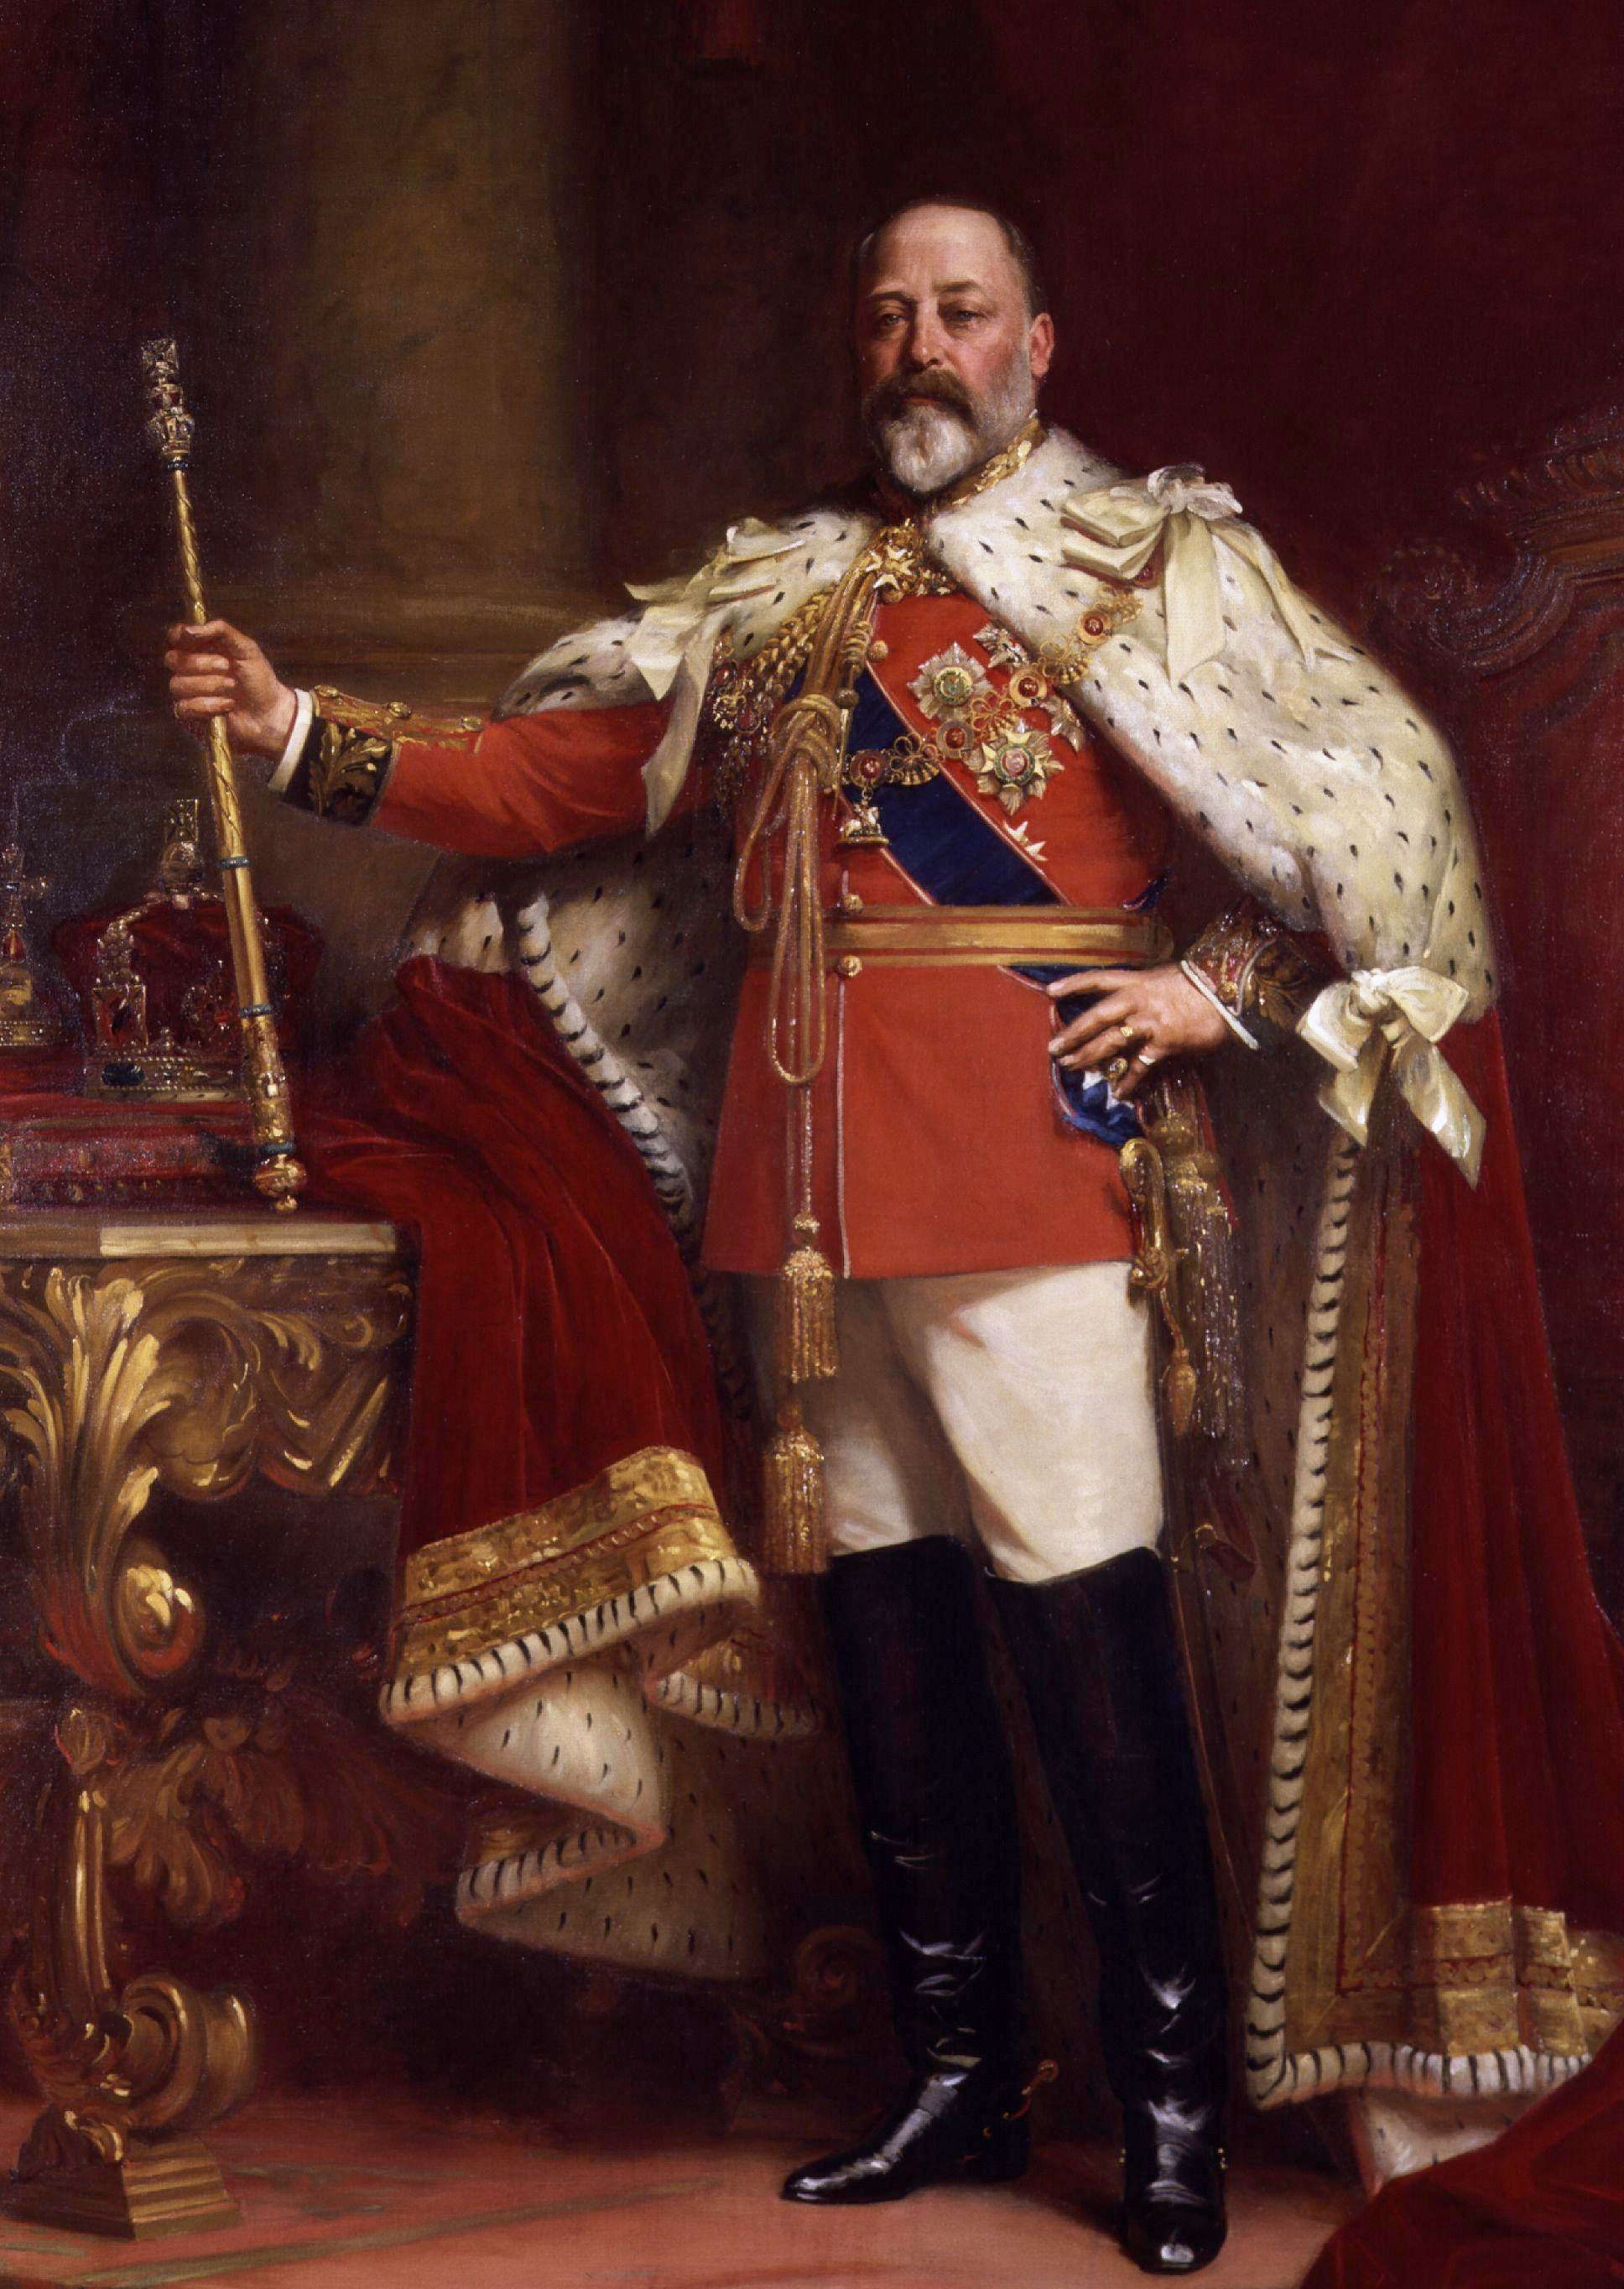 Portrait of King Edward VII (1841-1910), oil on canvas painting by Sir Luke Fildes, 1902 replica of 1901 portrait. Gven to the National Portrait Gallery, London in 1912. (NPG 1691)